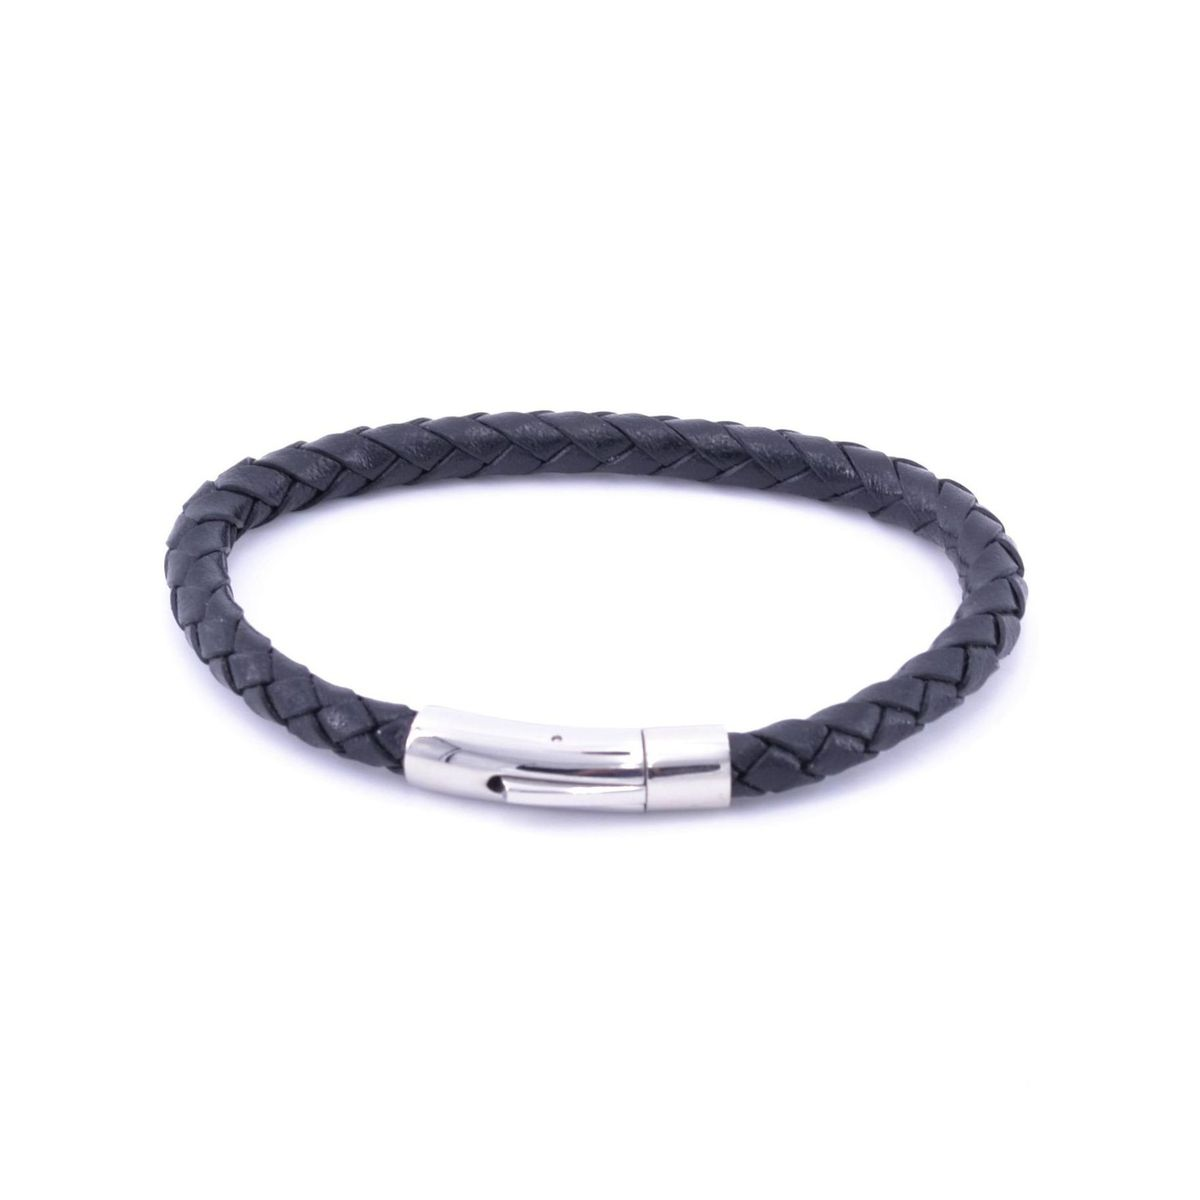 Braided leather bracelet 2 Black BRASS Workshop